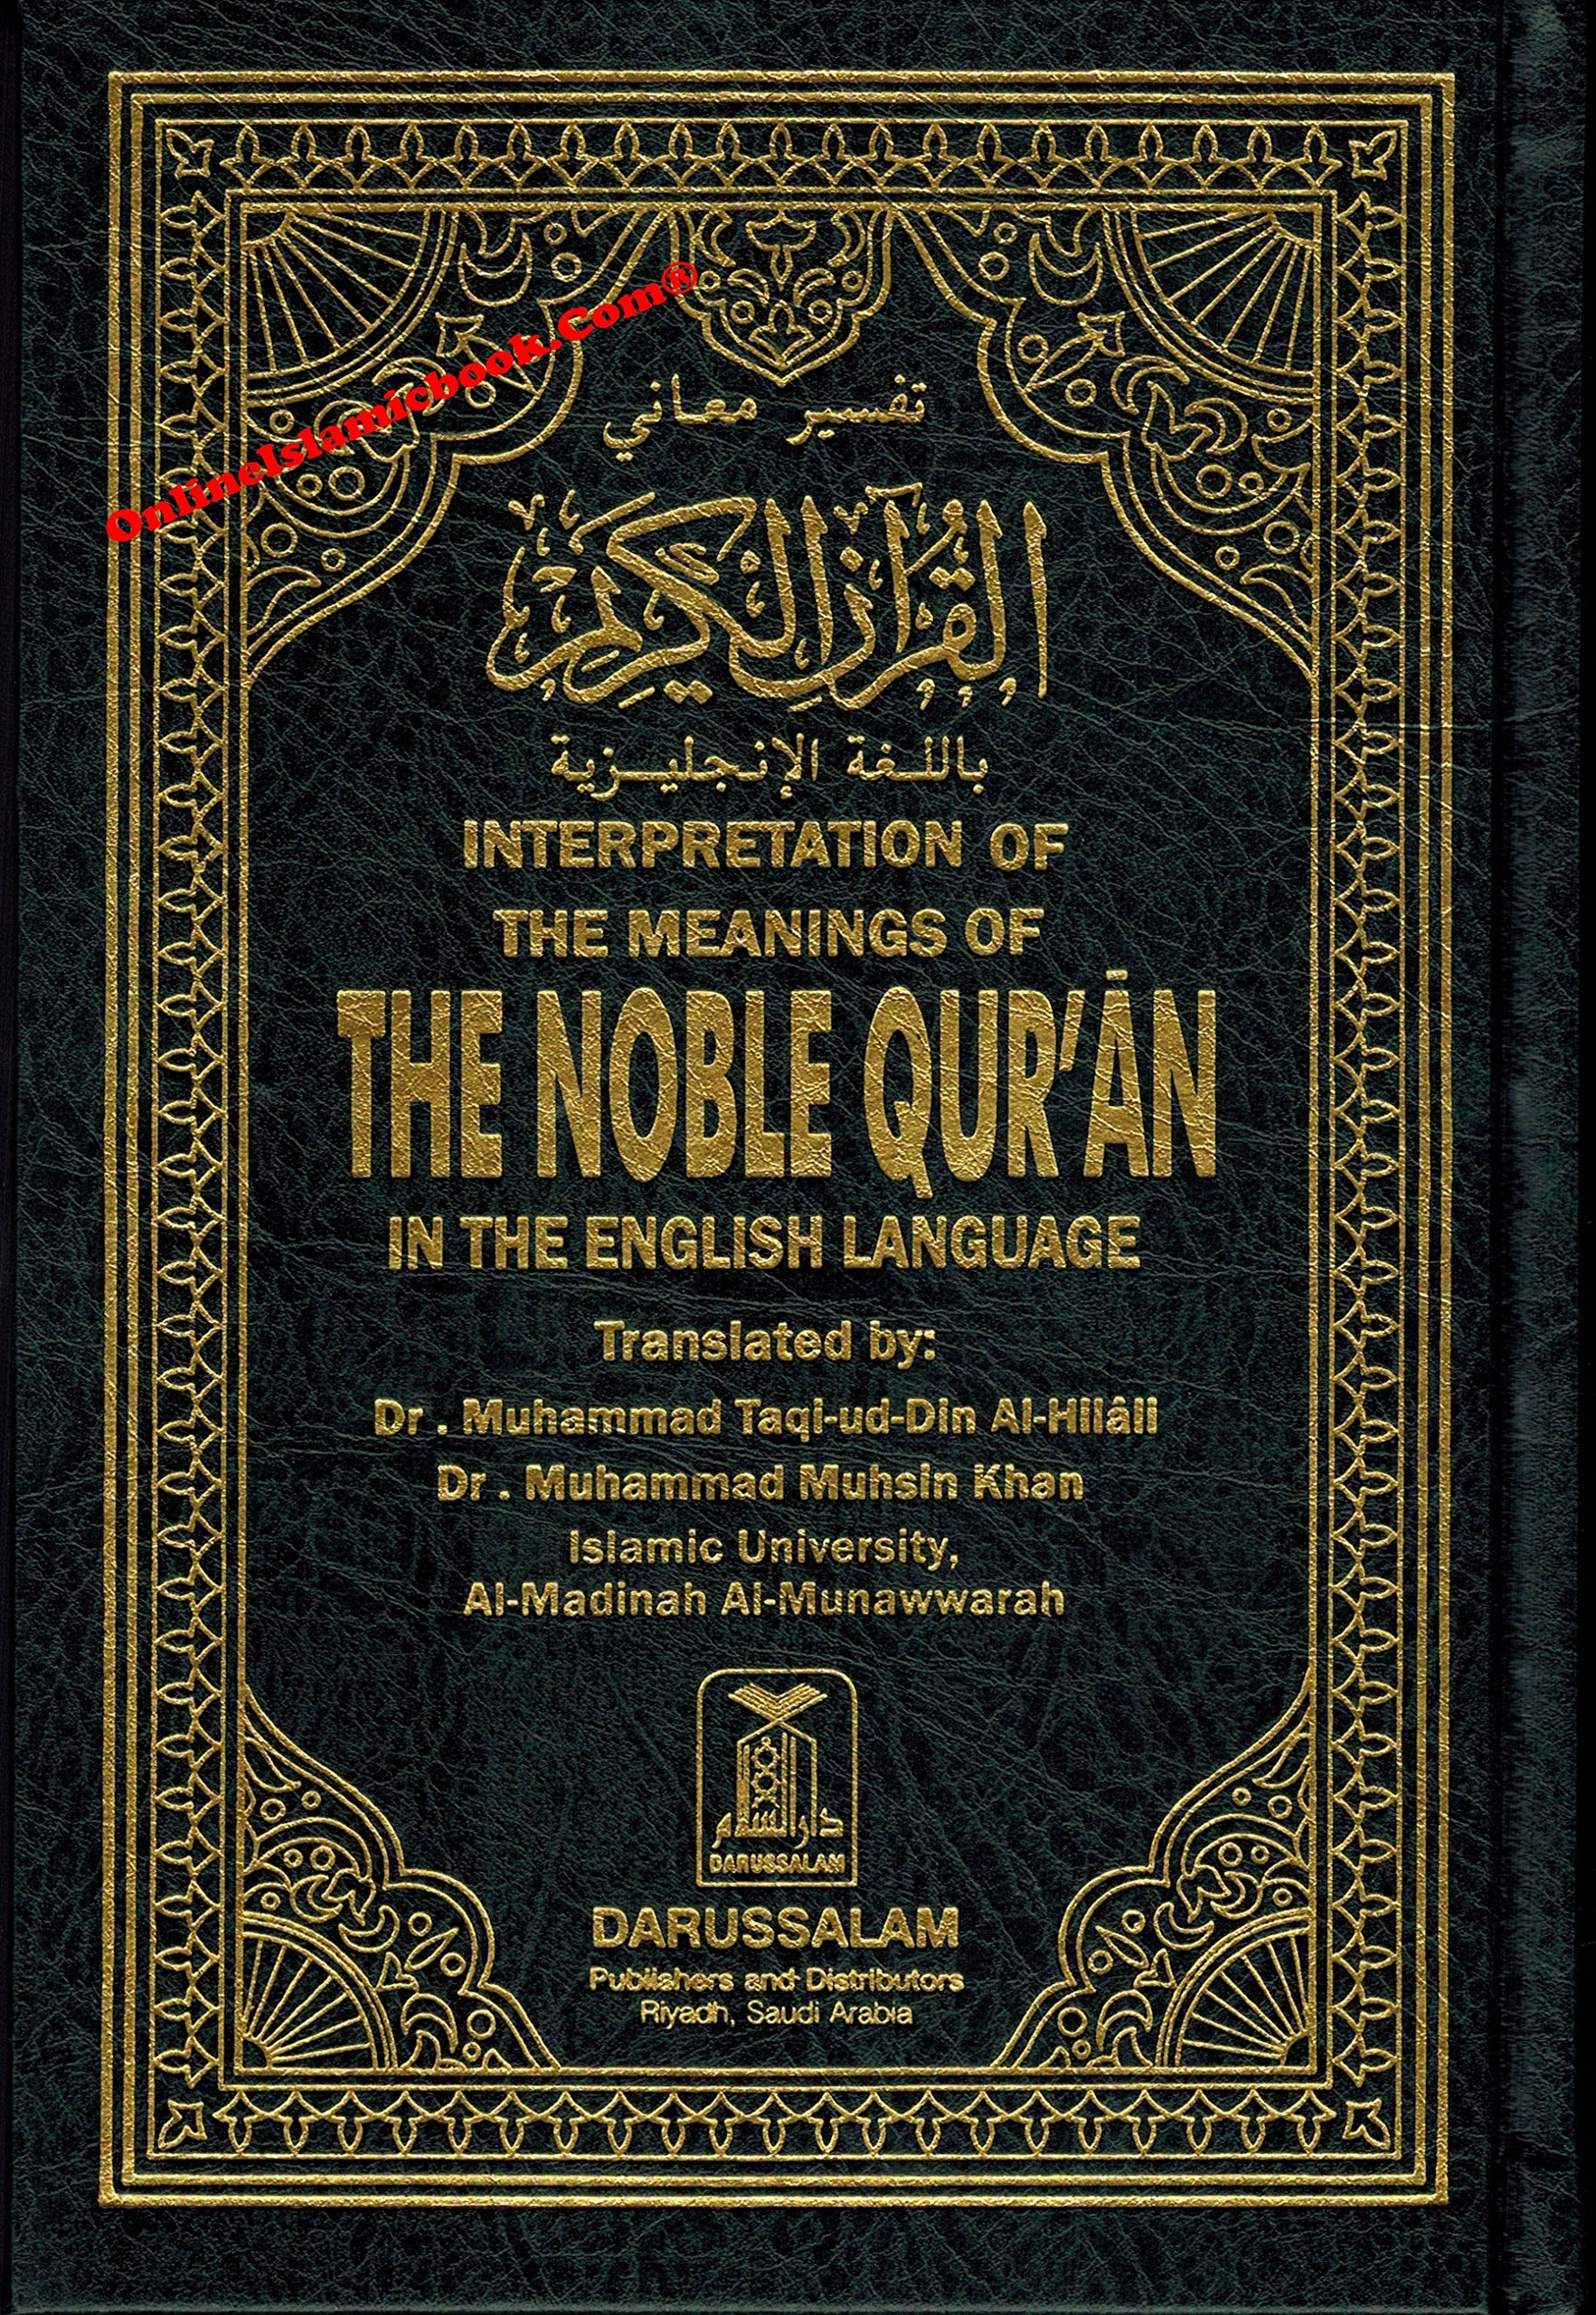 Read PDF Translation of the Meanings of THE NOBLE QURAN in